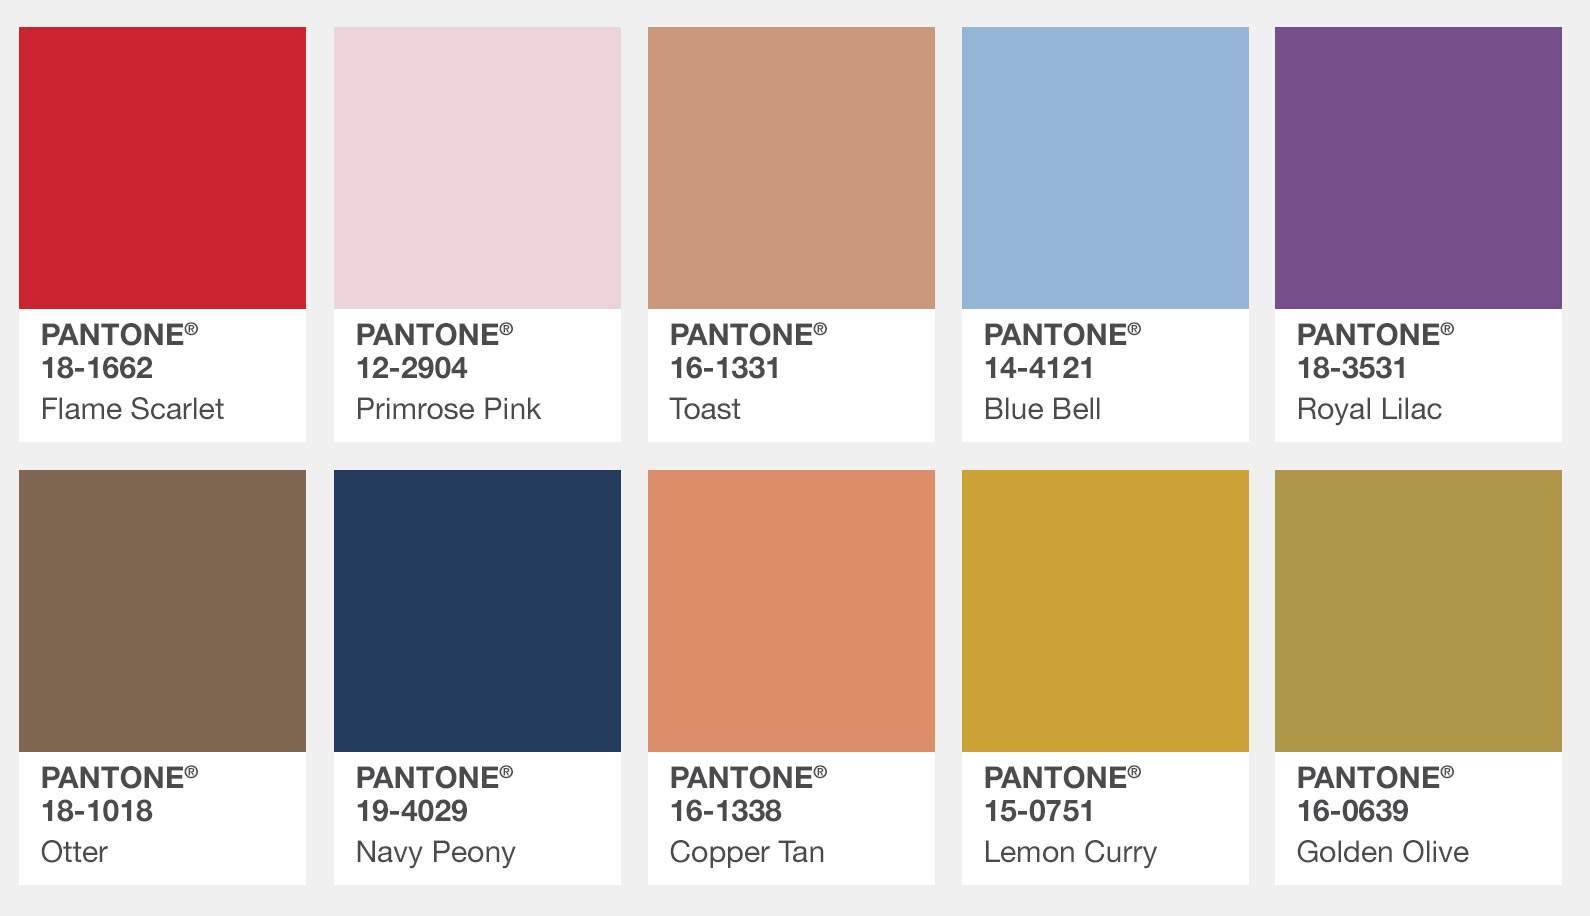 Pantone 2017 Fall Fashion Color Swatches, London